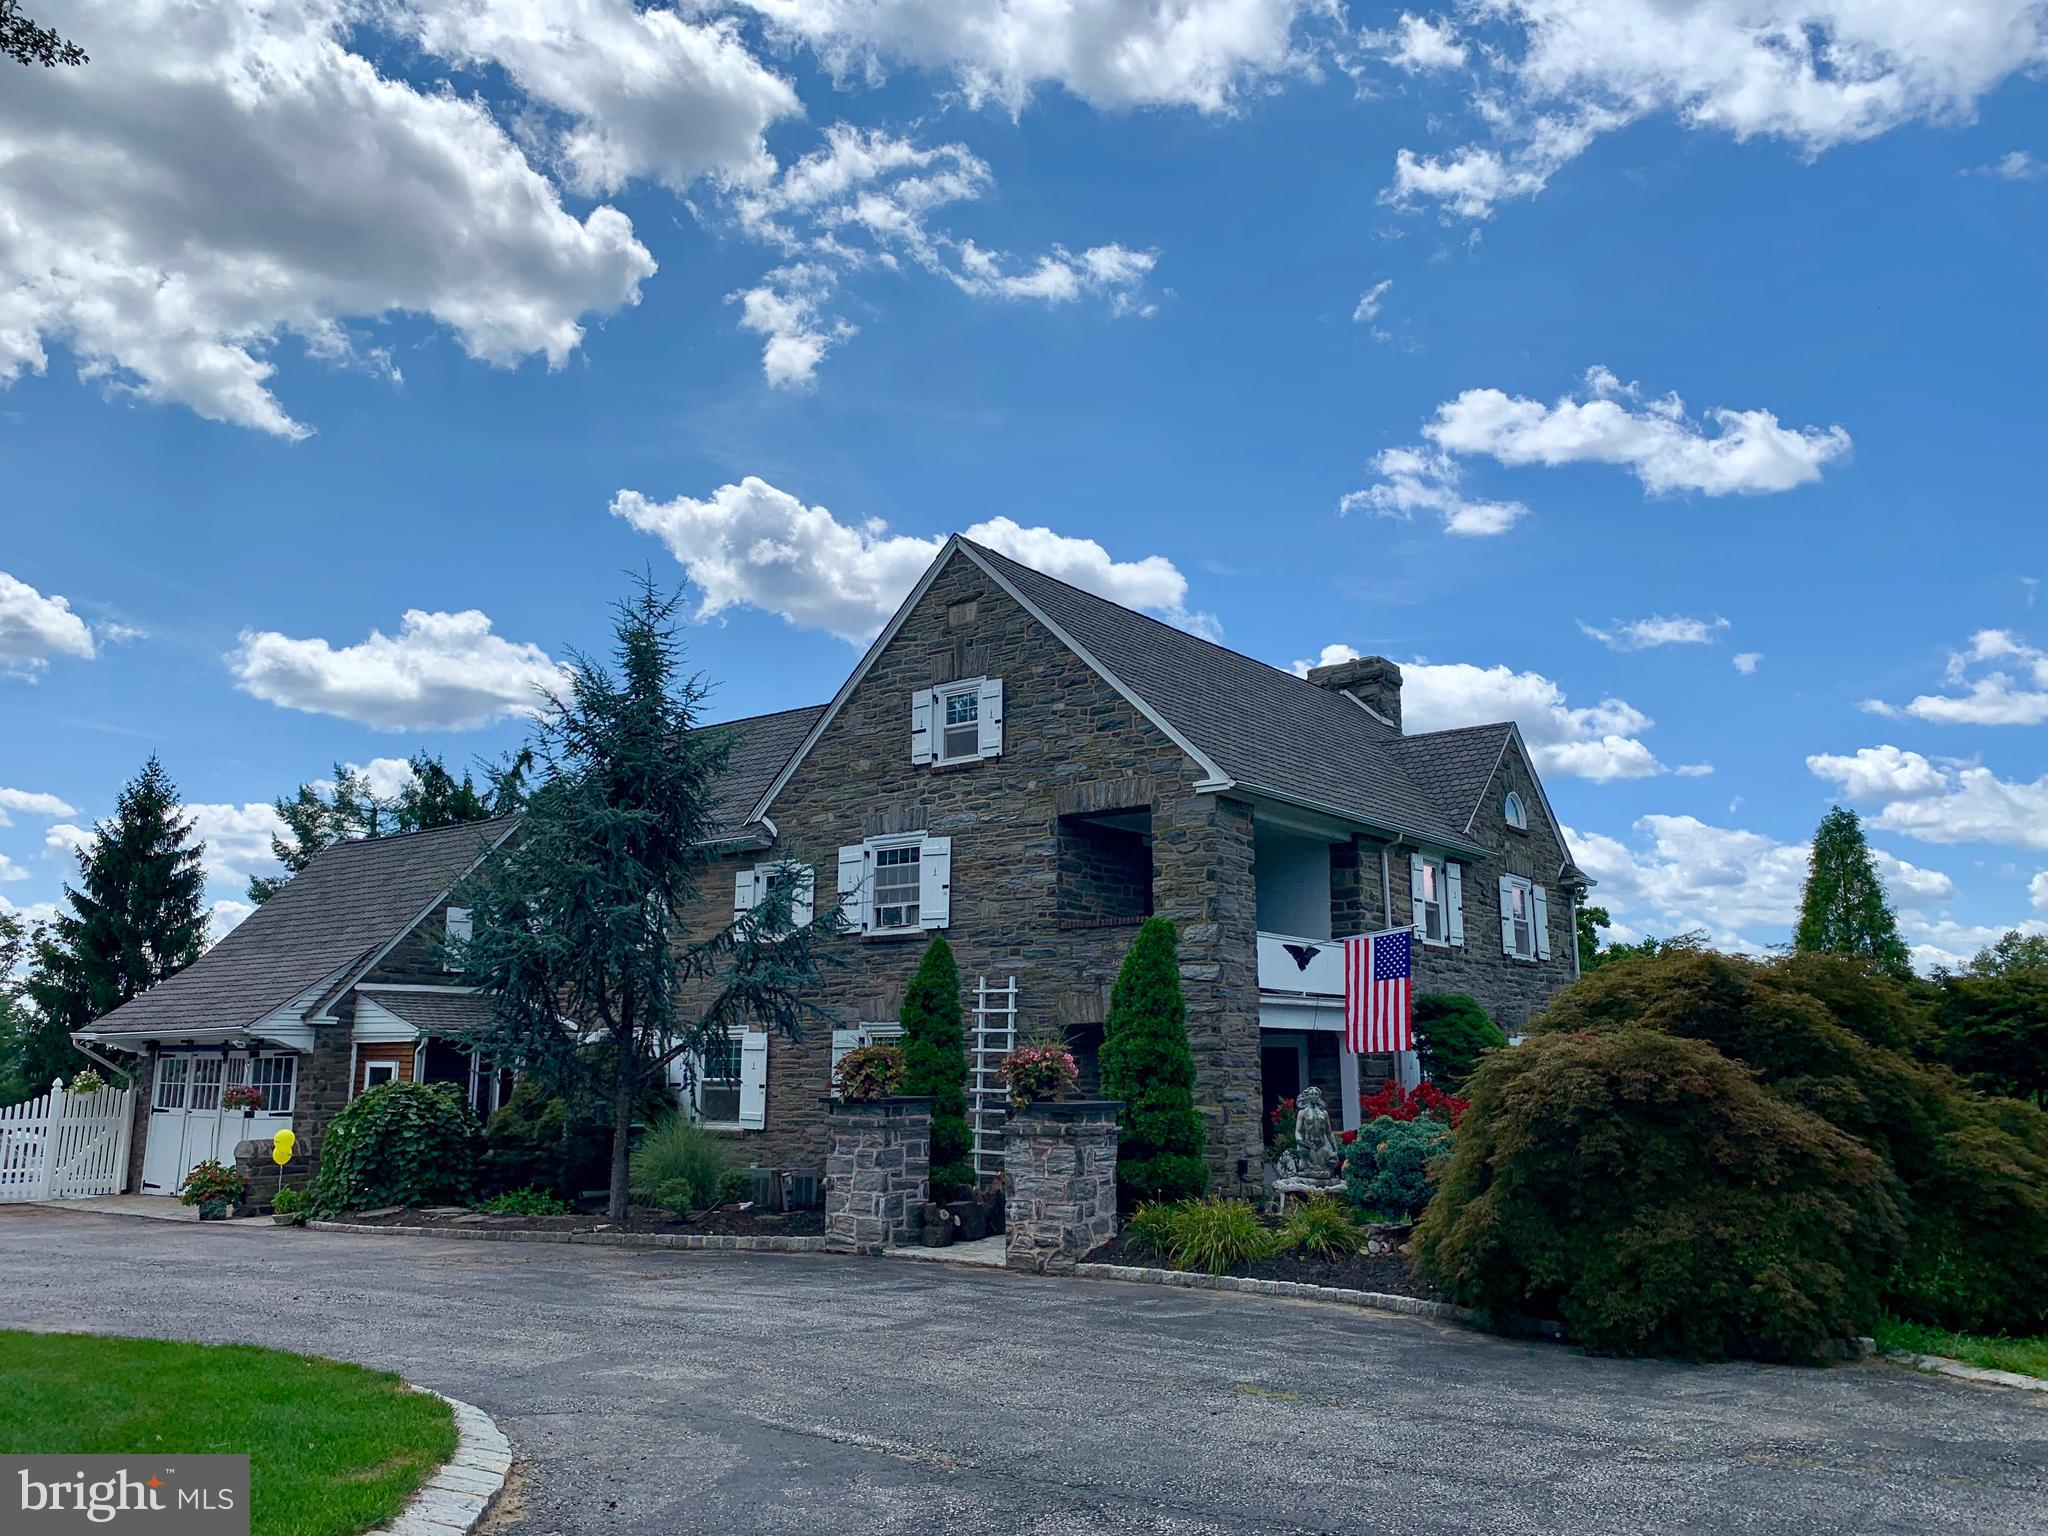 1616 SANDY HILL ROAD, PLYMOUTH MEETING, PA 19462